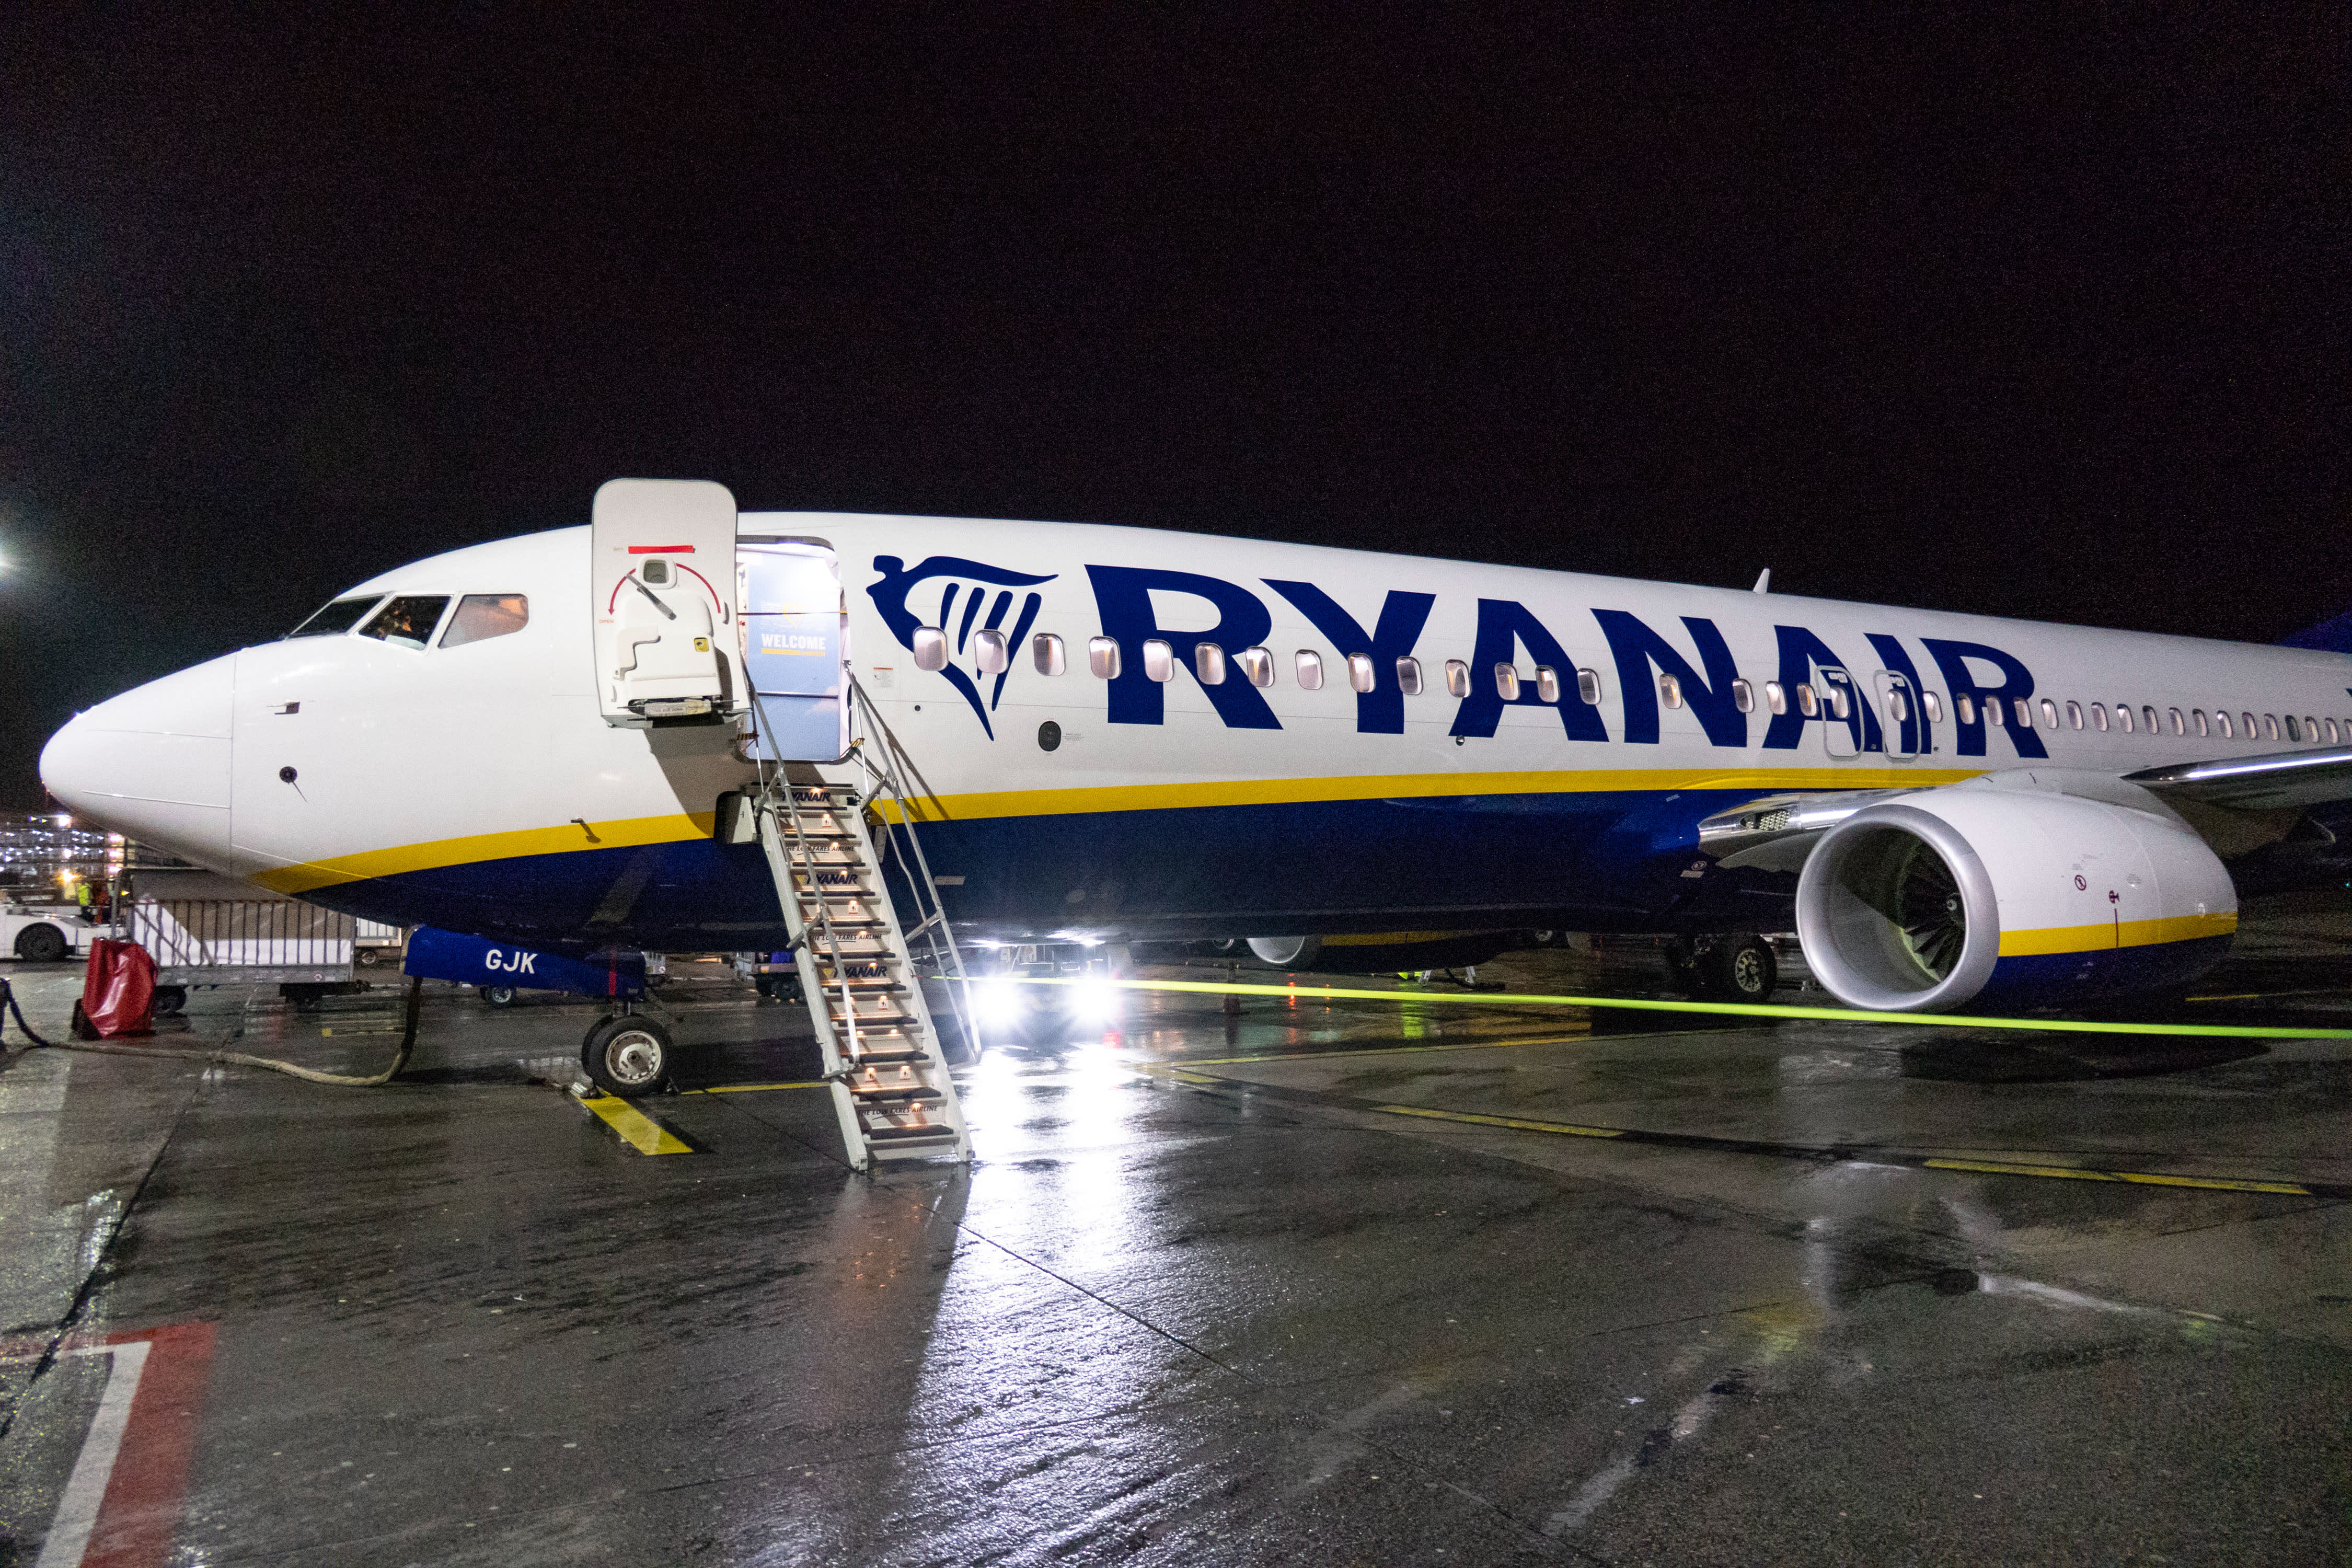 A Ryanair Boeing 737-800 aircraft parked at Eindhoven airport tarmac at night, in the Netherlands.